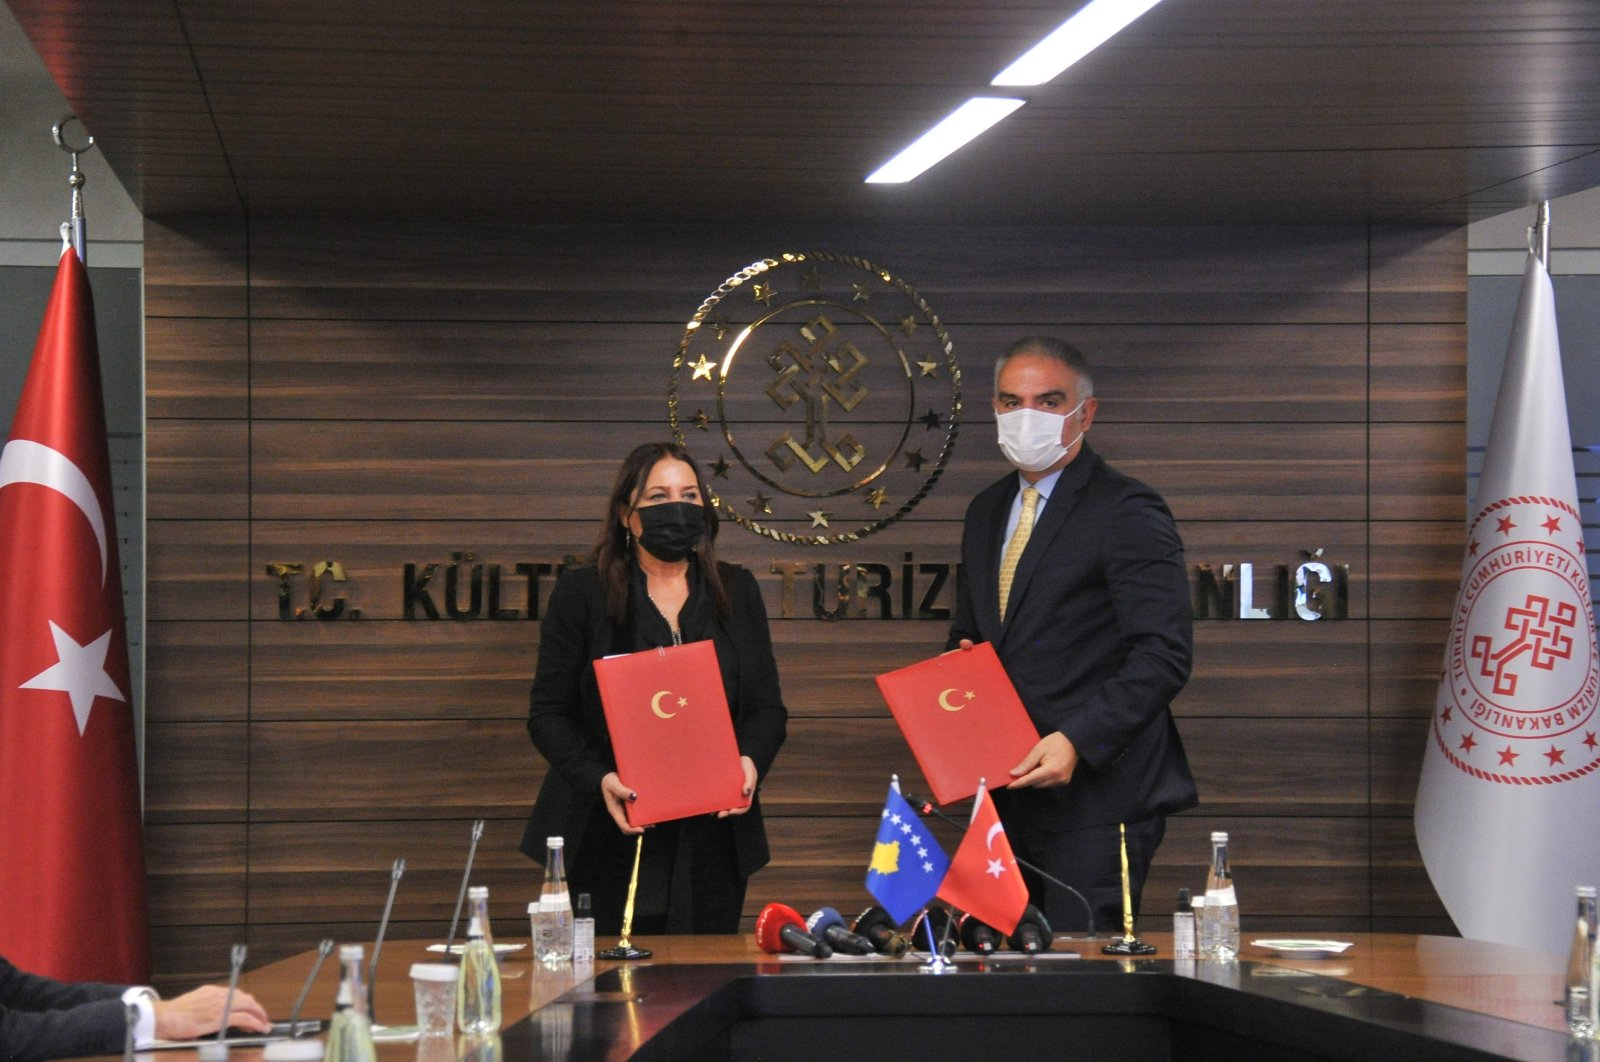 Turkey's Culture and Tourism Minister Mehmet Nuri Ersoy (R) and his Kosovar counterpart Vlora Dumoshi pose with the agreement at the Ministry of Culture and Tourism building in the capital Ankara, Turkey, Dec. 3, 2020. (IHA Photo)